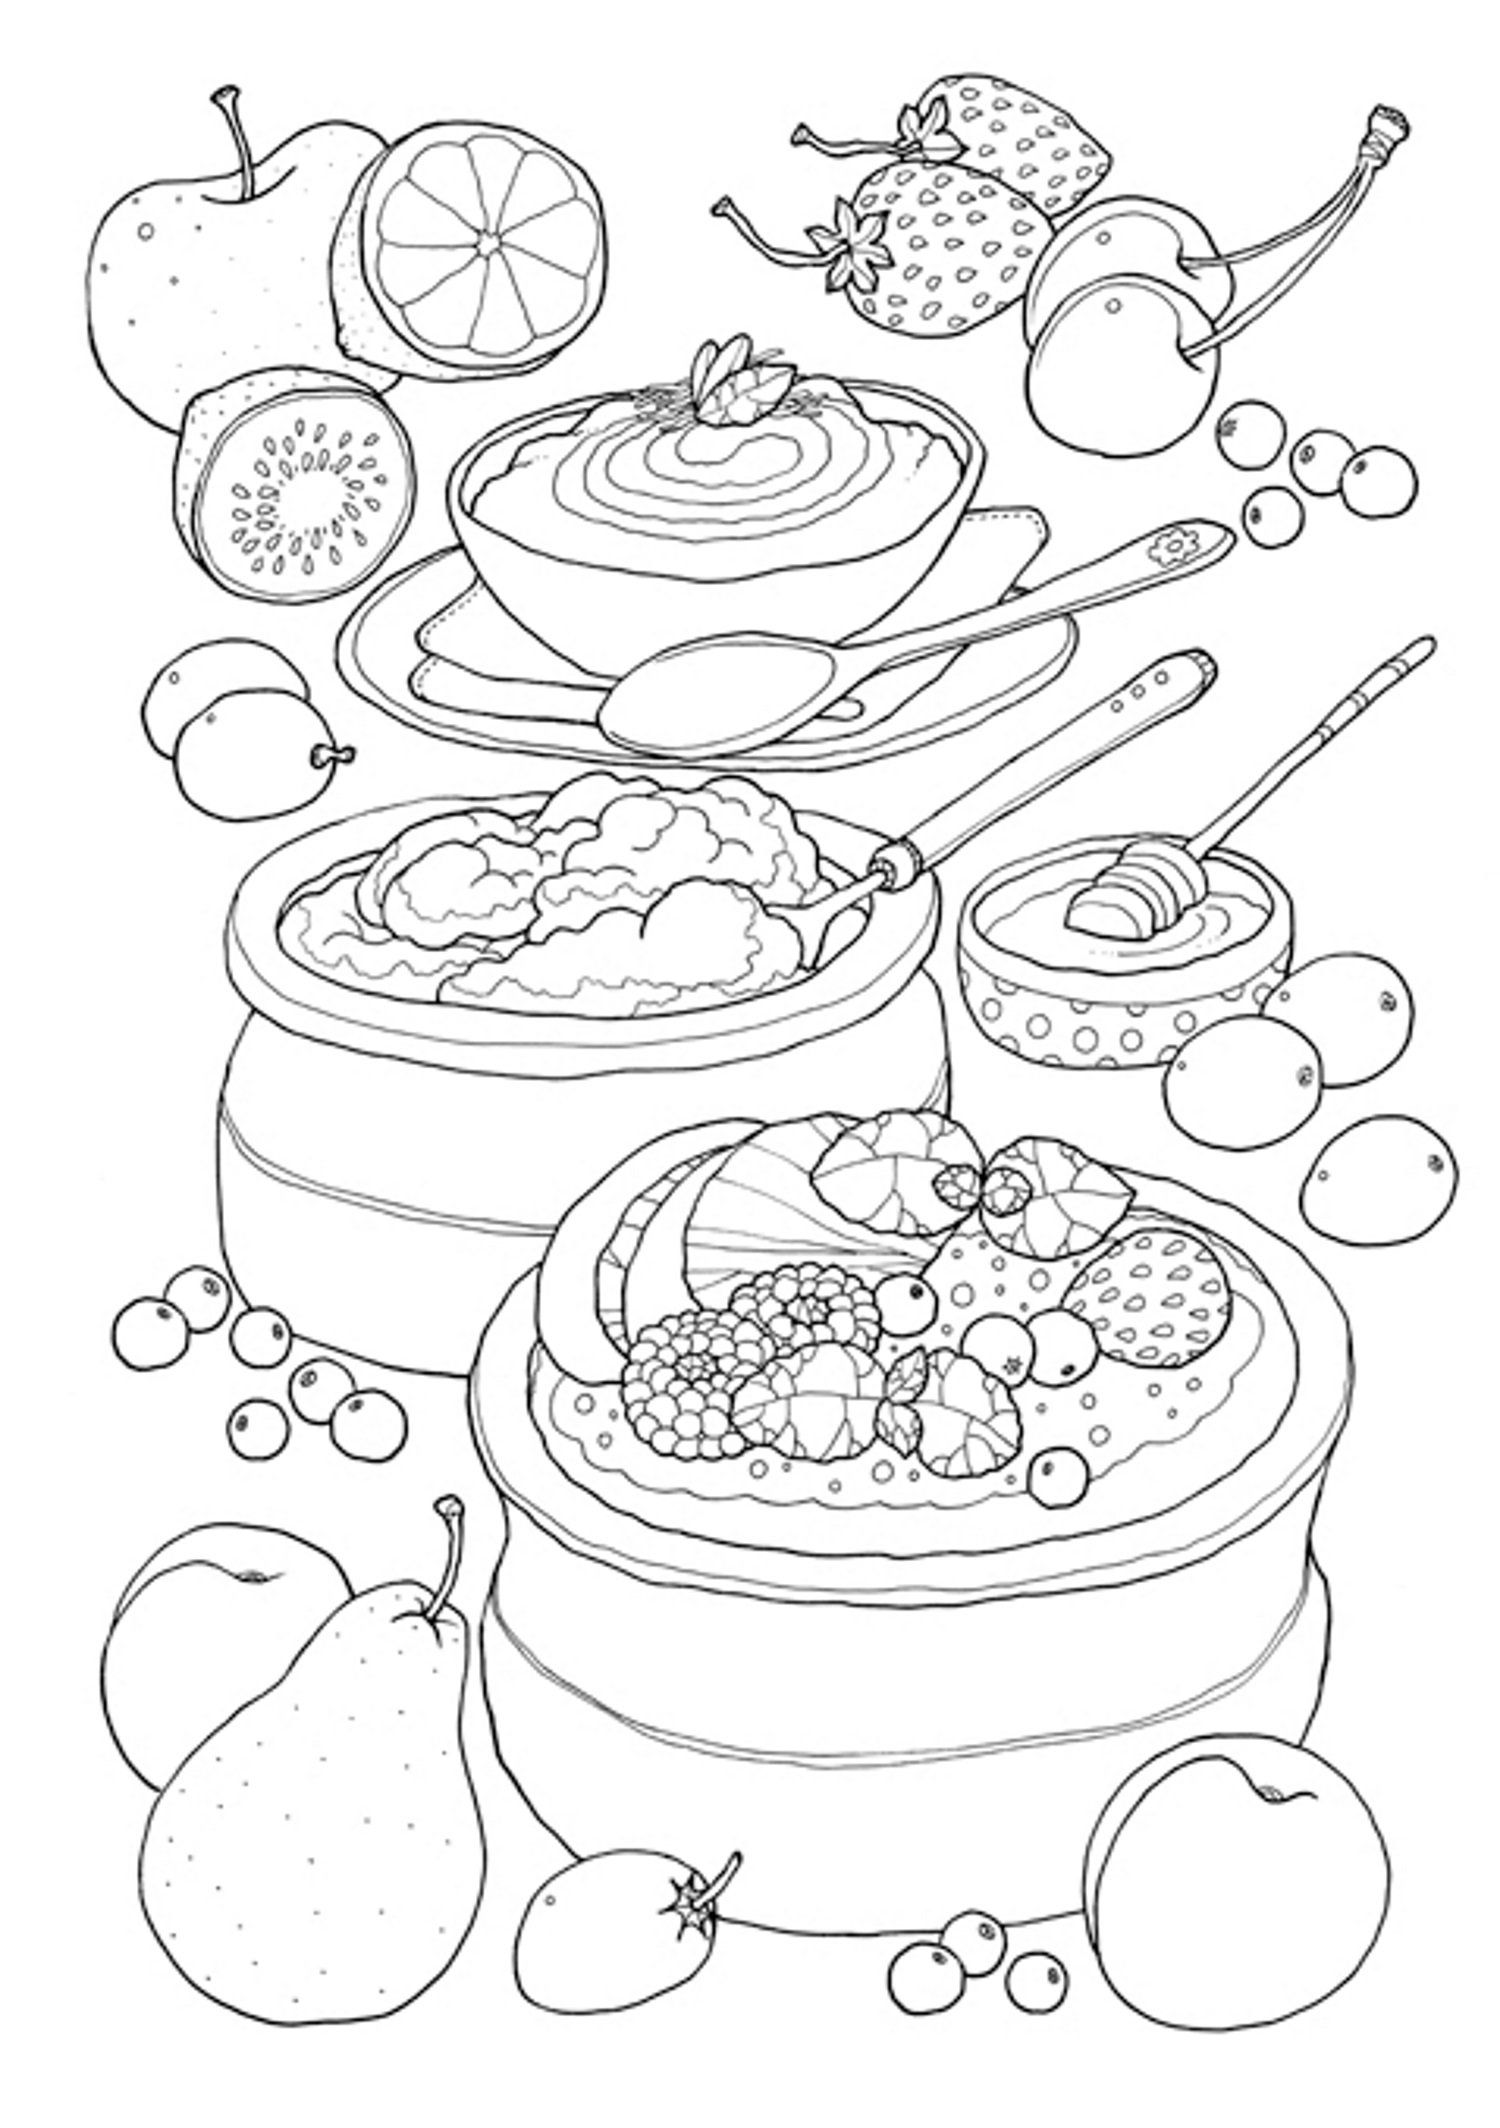 Robot Check Coloring Books Food Coloring Pages Coloring Pages